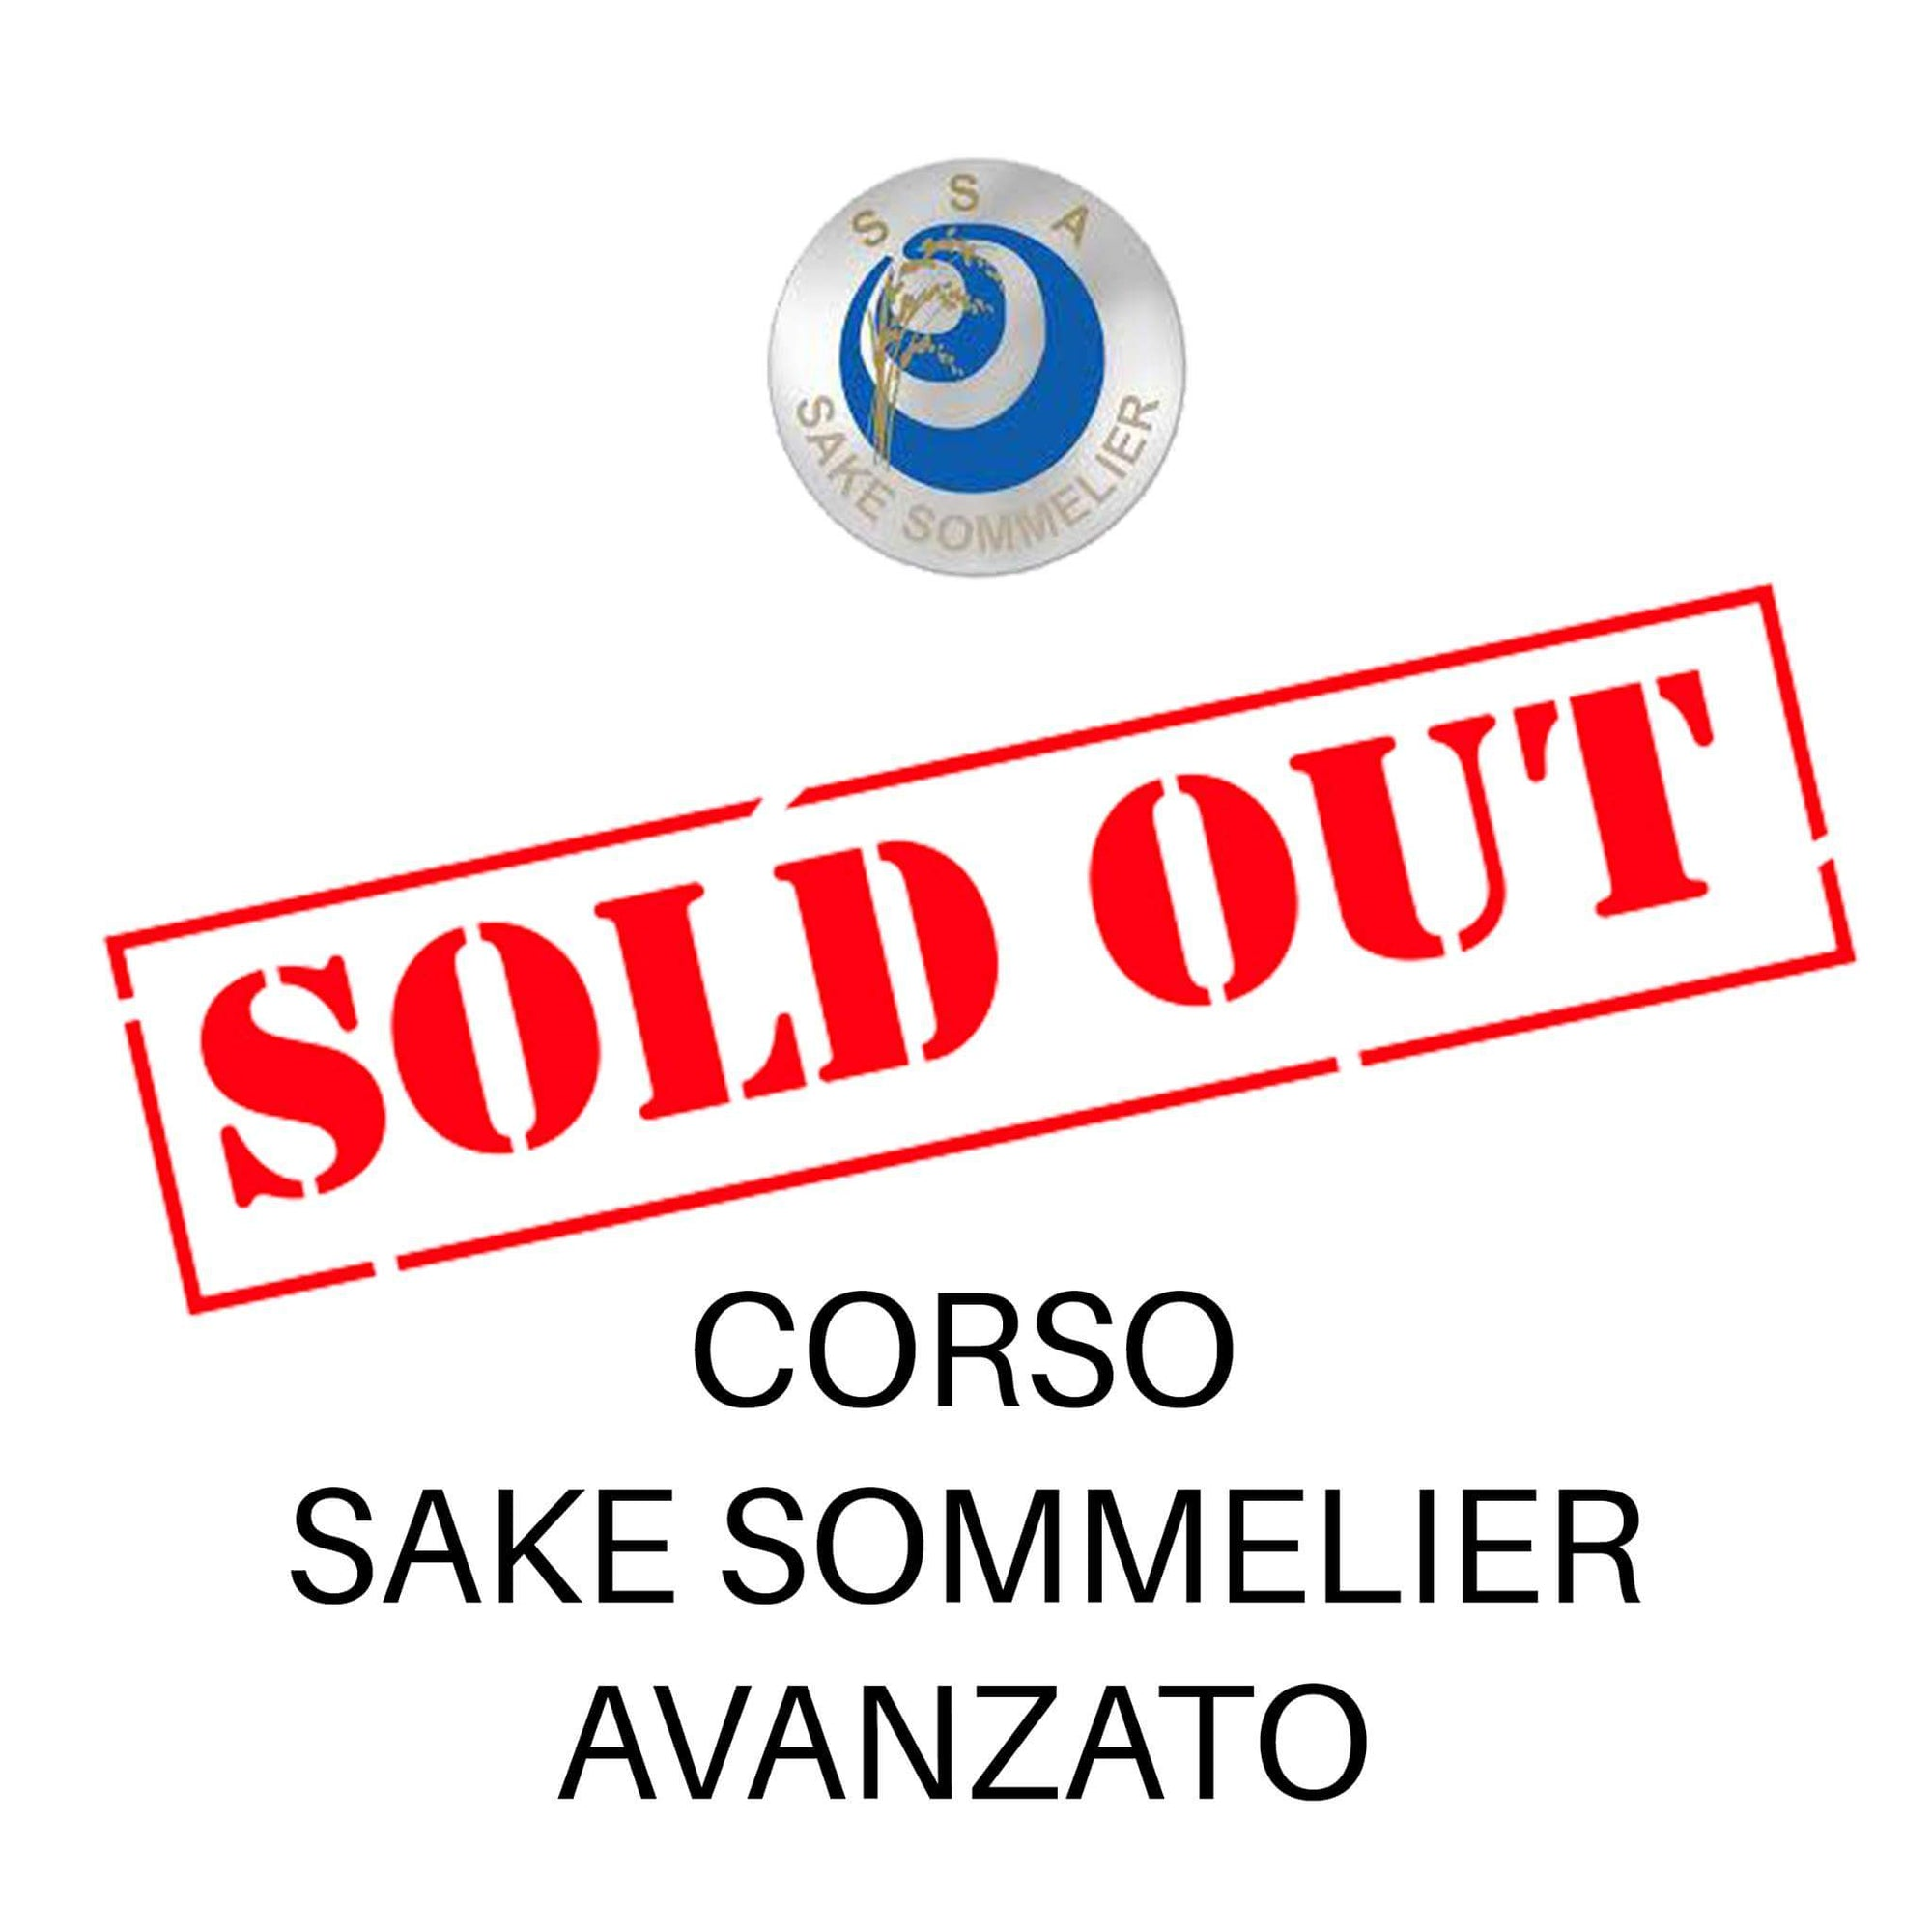 corso ssa avanzato sold out